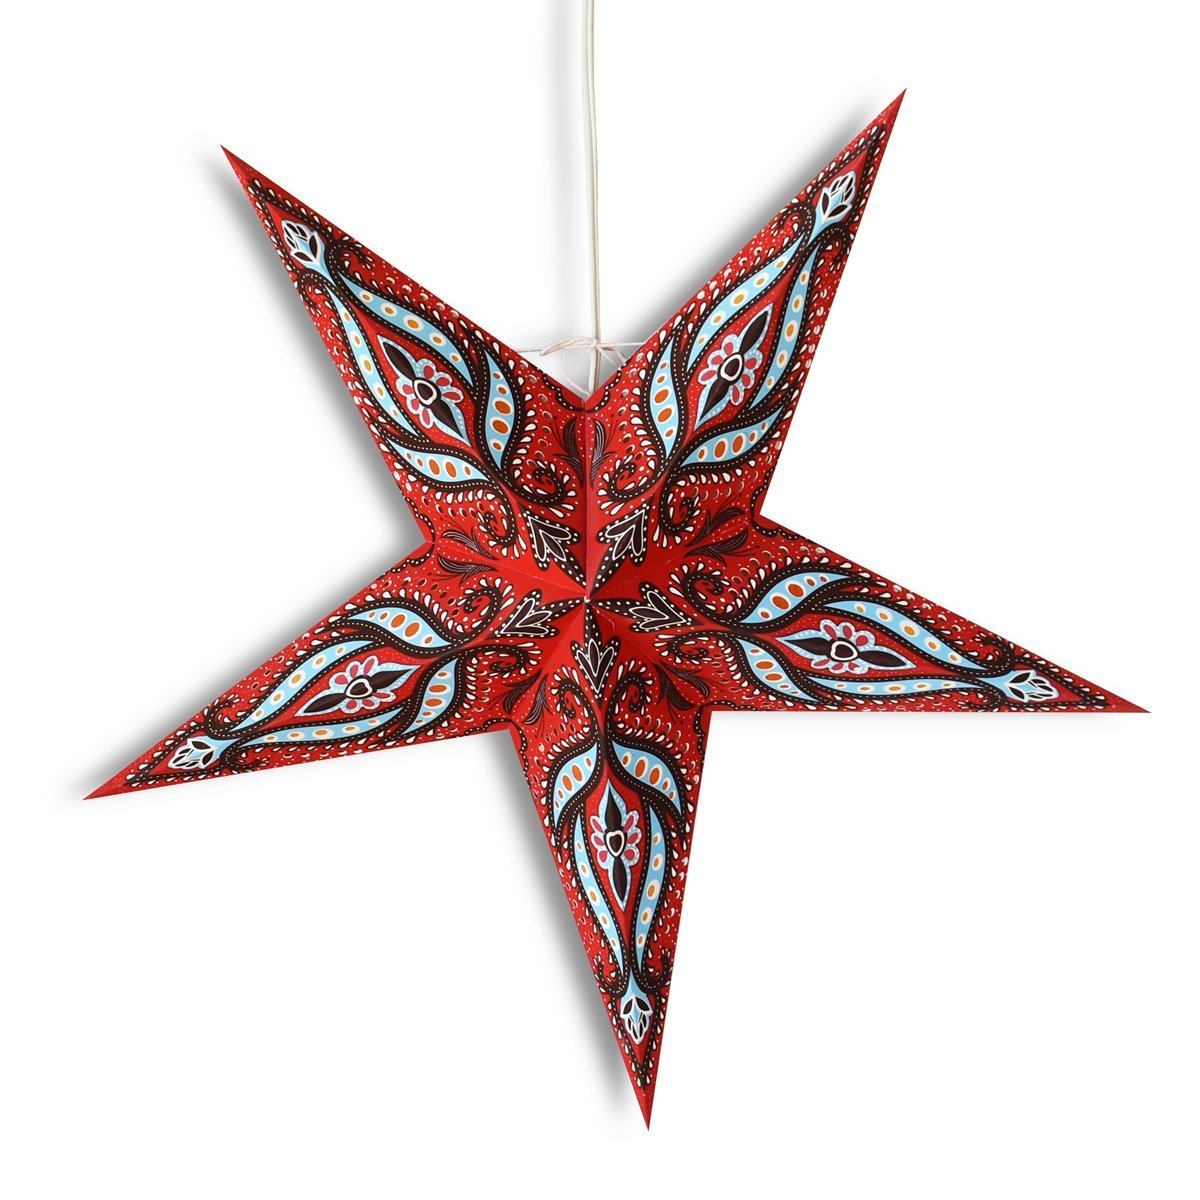 "24"" Red / Black Bloom Paper Star Lantern, Hanging Wedding & Party Decoration - PaperLanternStore.com - Paper Lanterns, Decor, Party Lights & More"